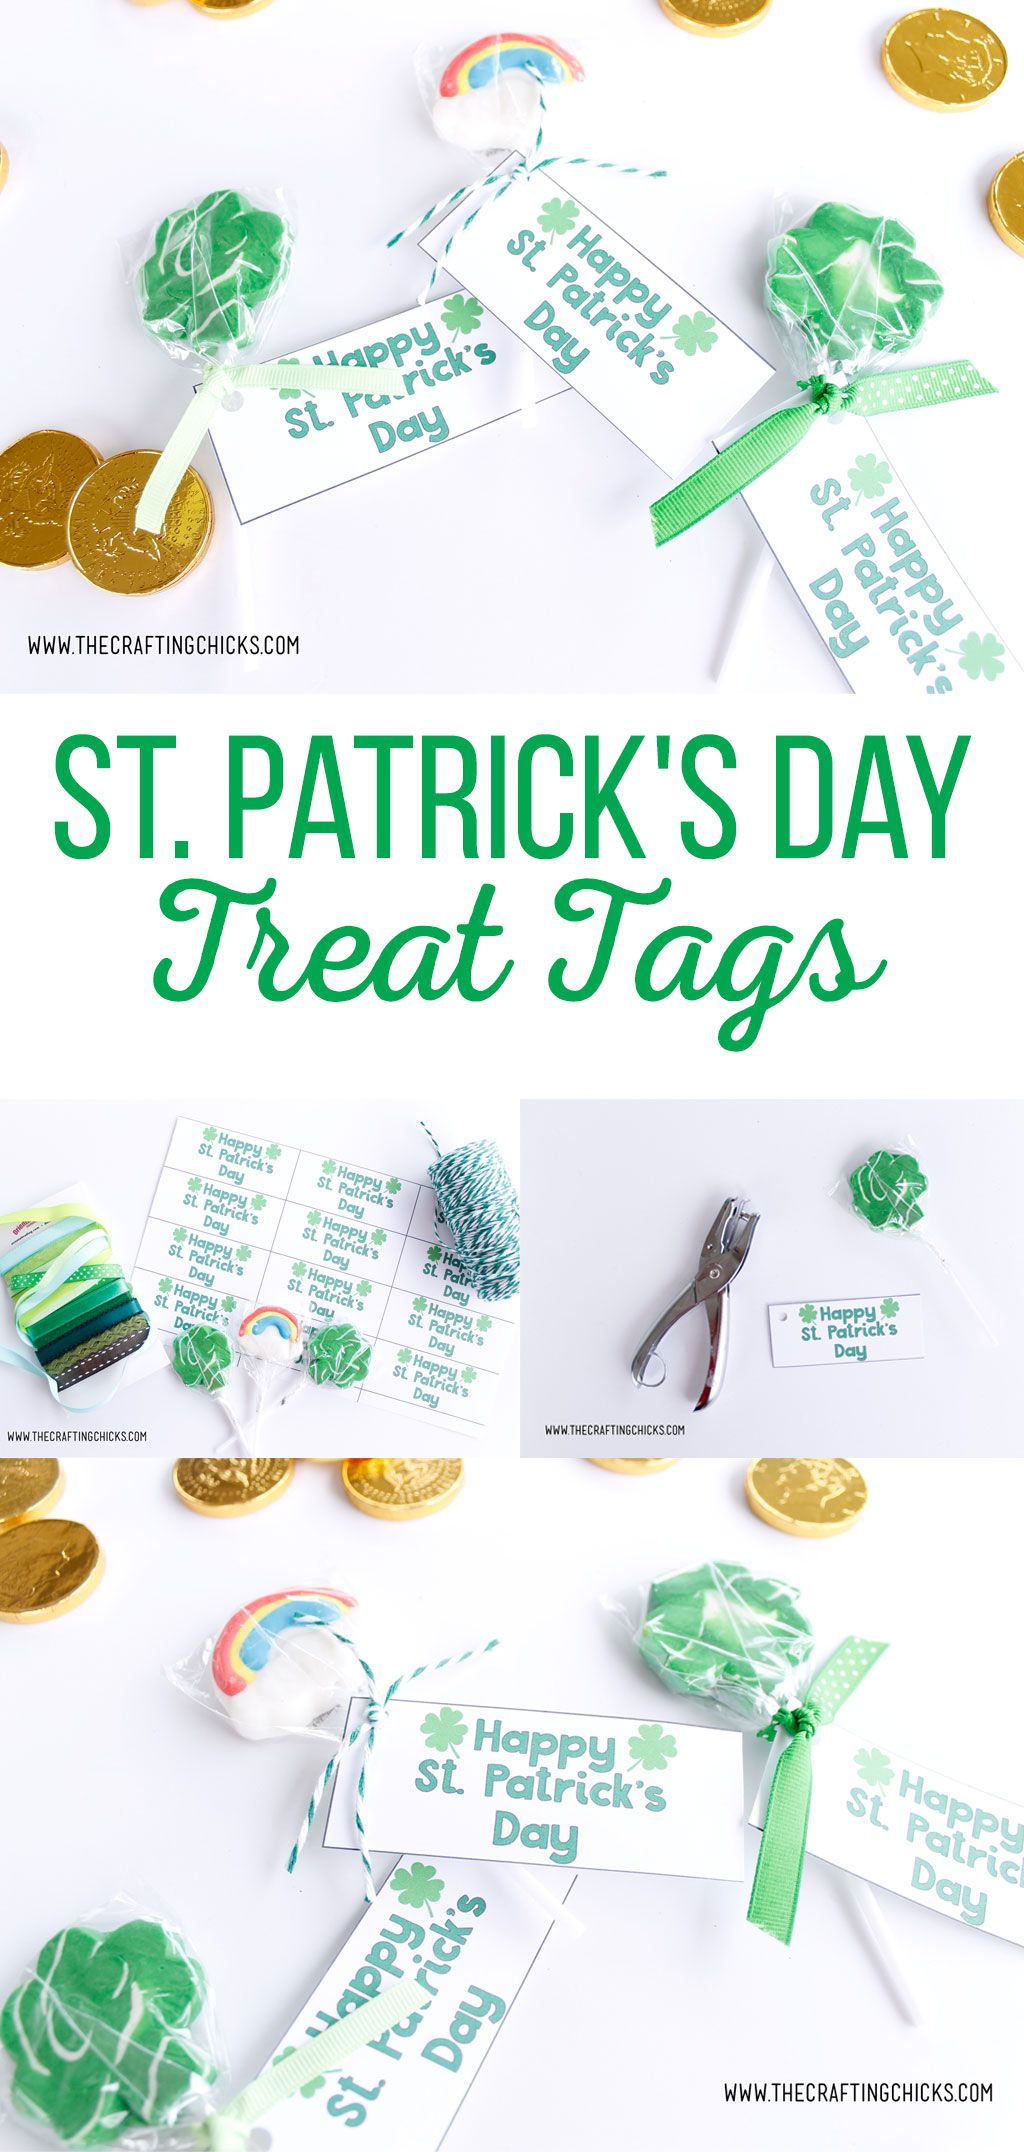 St. Patrick's Day Treat Tags | Are you looking for a way to show your friends and family you're lucky to have them this St. Patrick's Day? These adorable St. Patrick's Day Treat Tags are the perfect way. Print them out and add them to any gift.